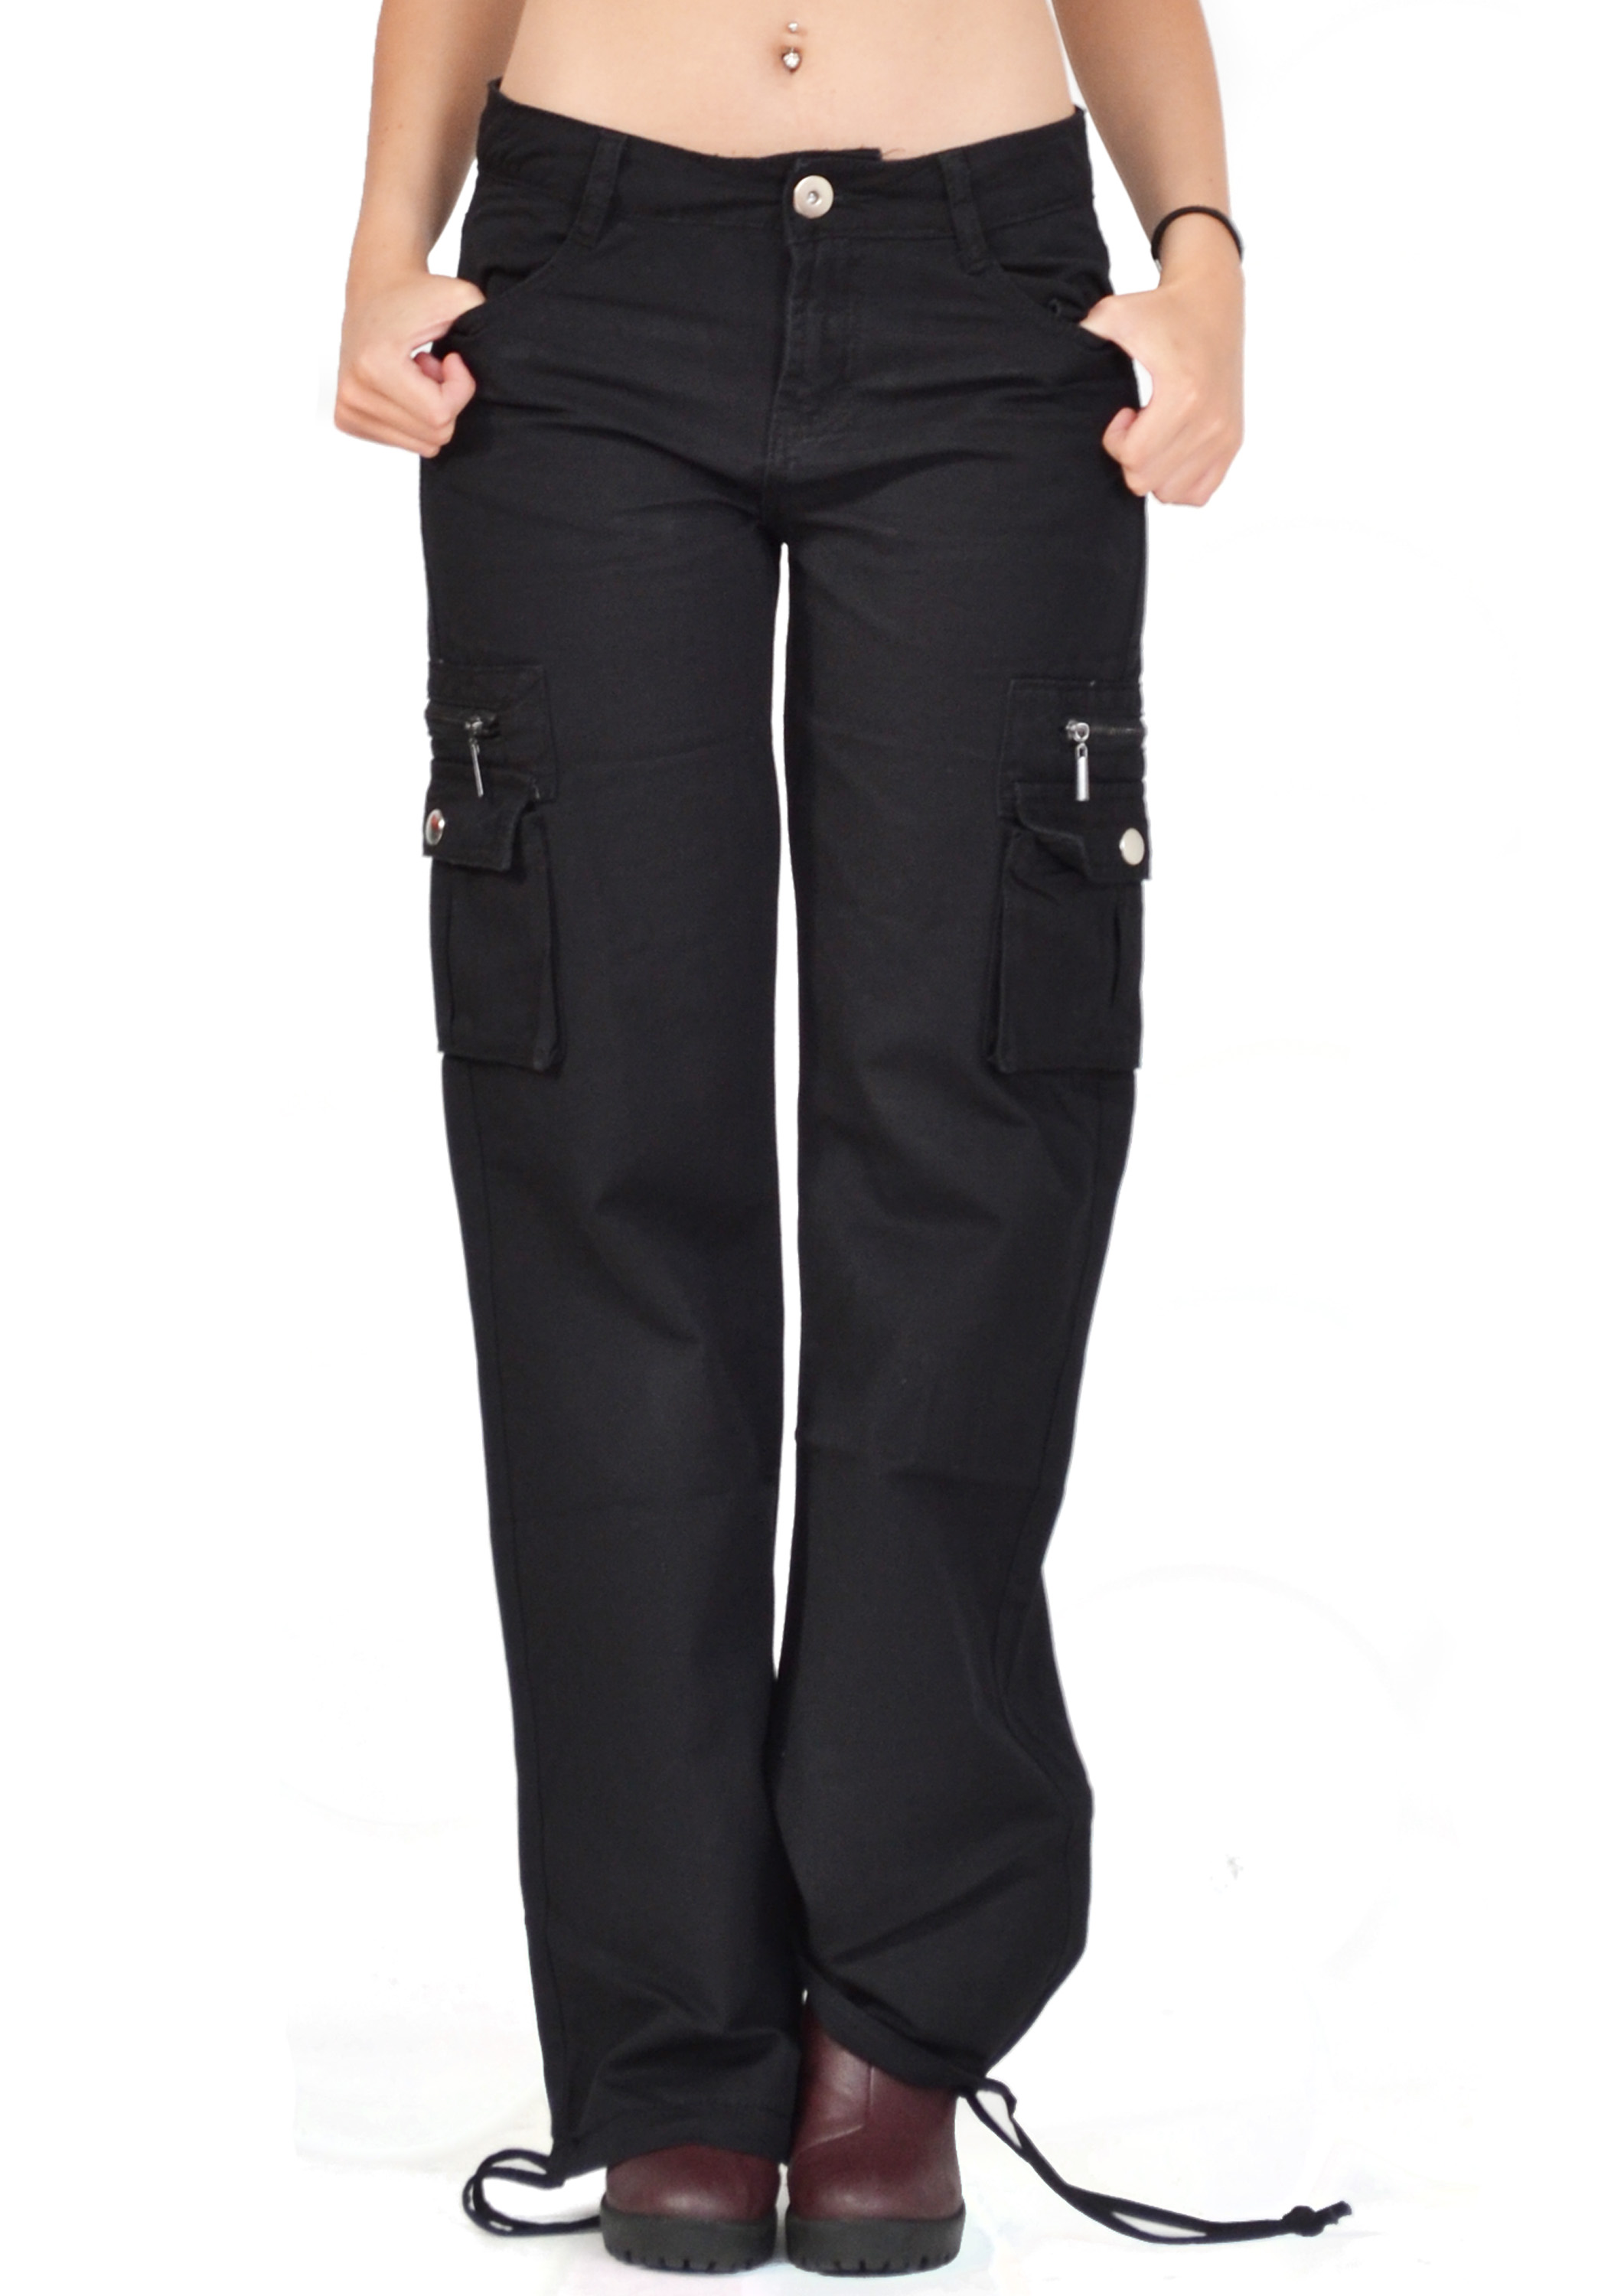 Find great deals on eBay for ladies combat trousers. Shop with confidence.